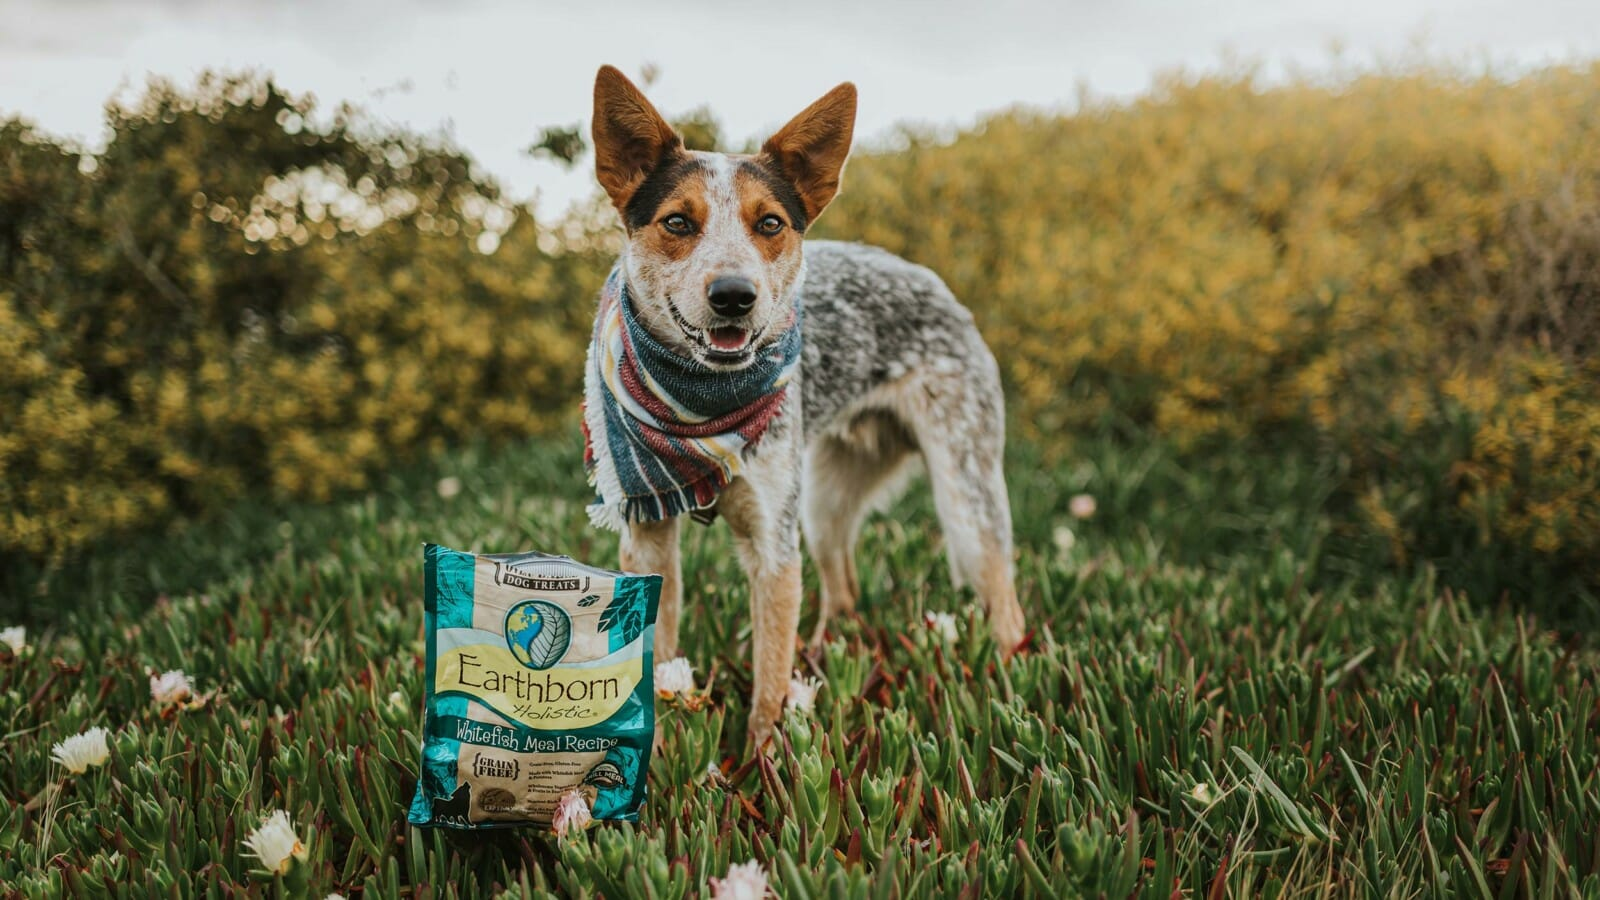 Dog smiling next to bag of Earthborn Holistic dog food